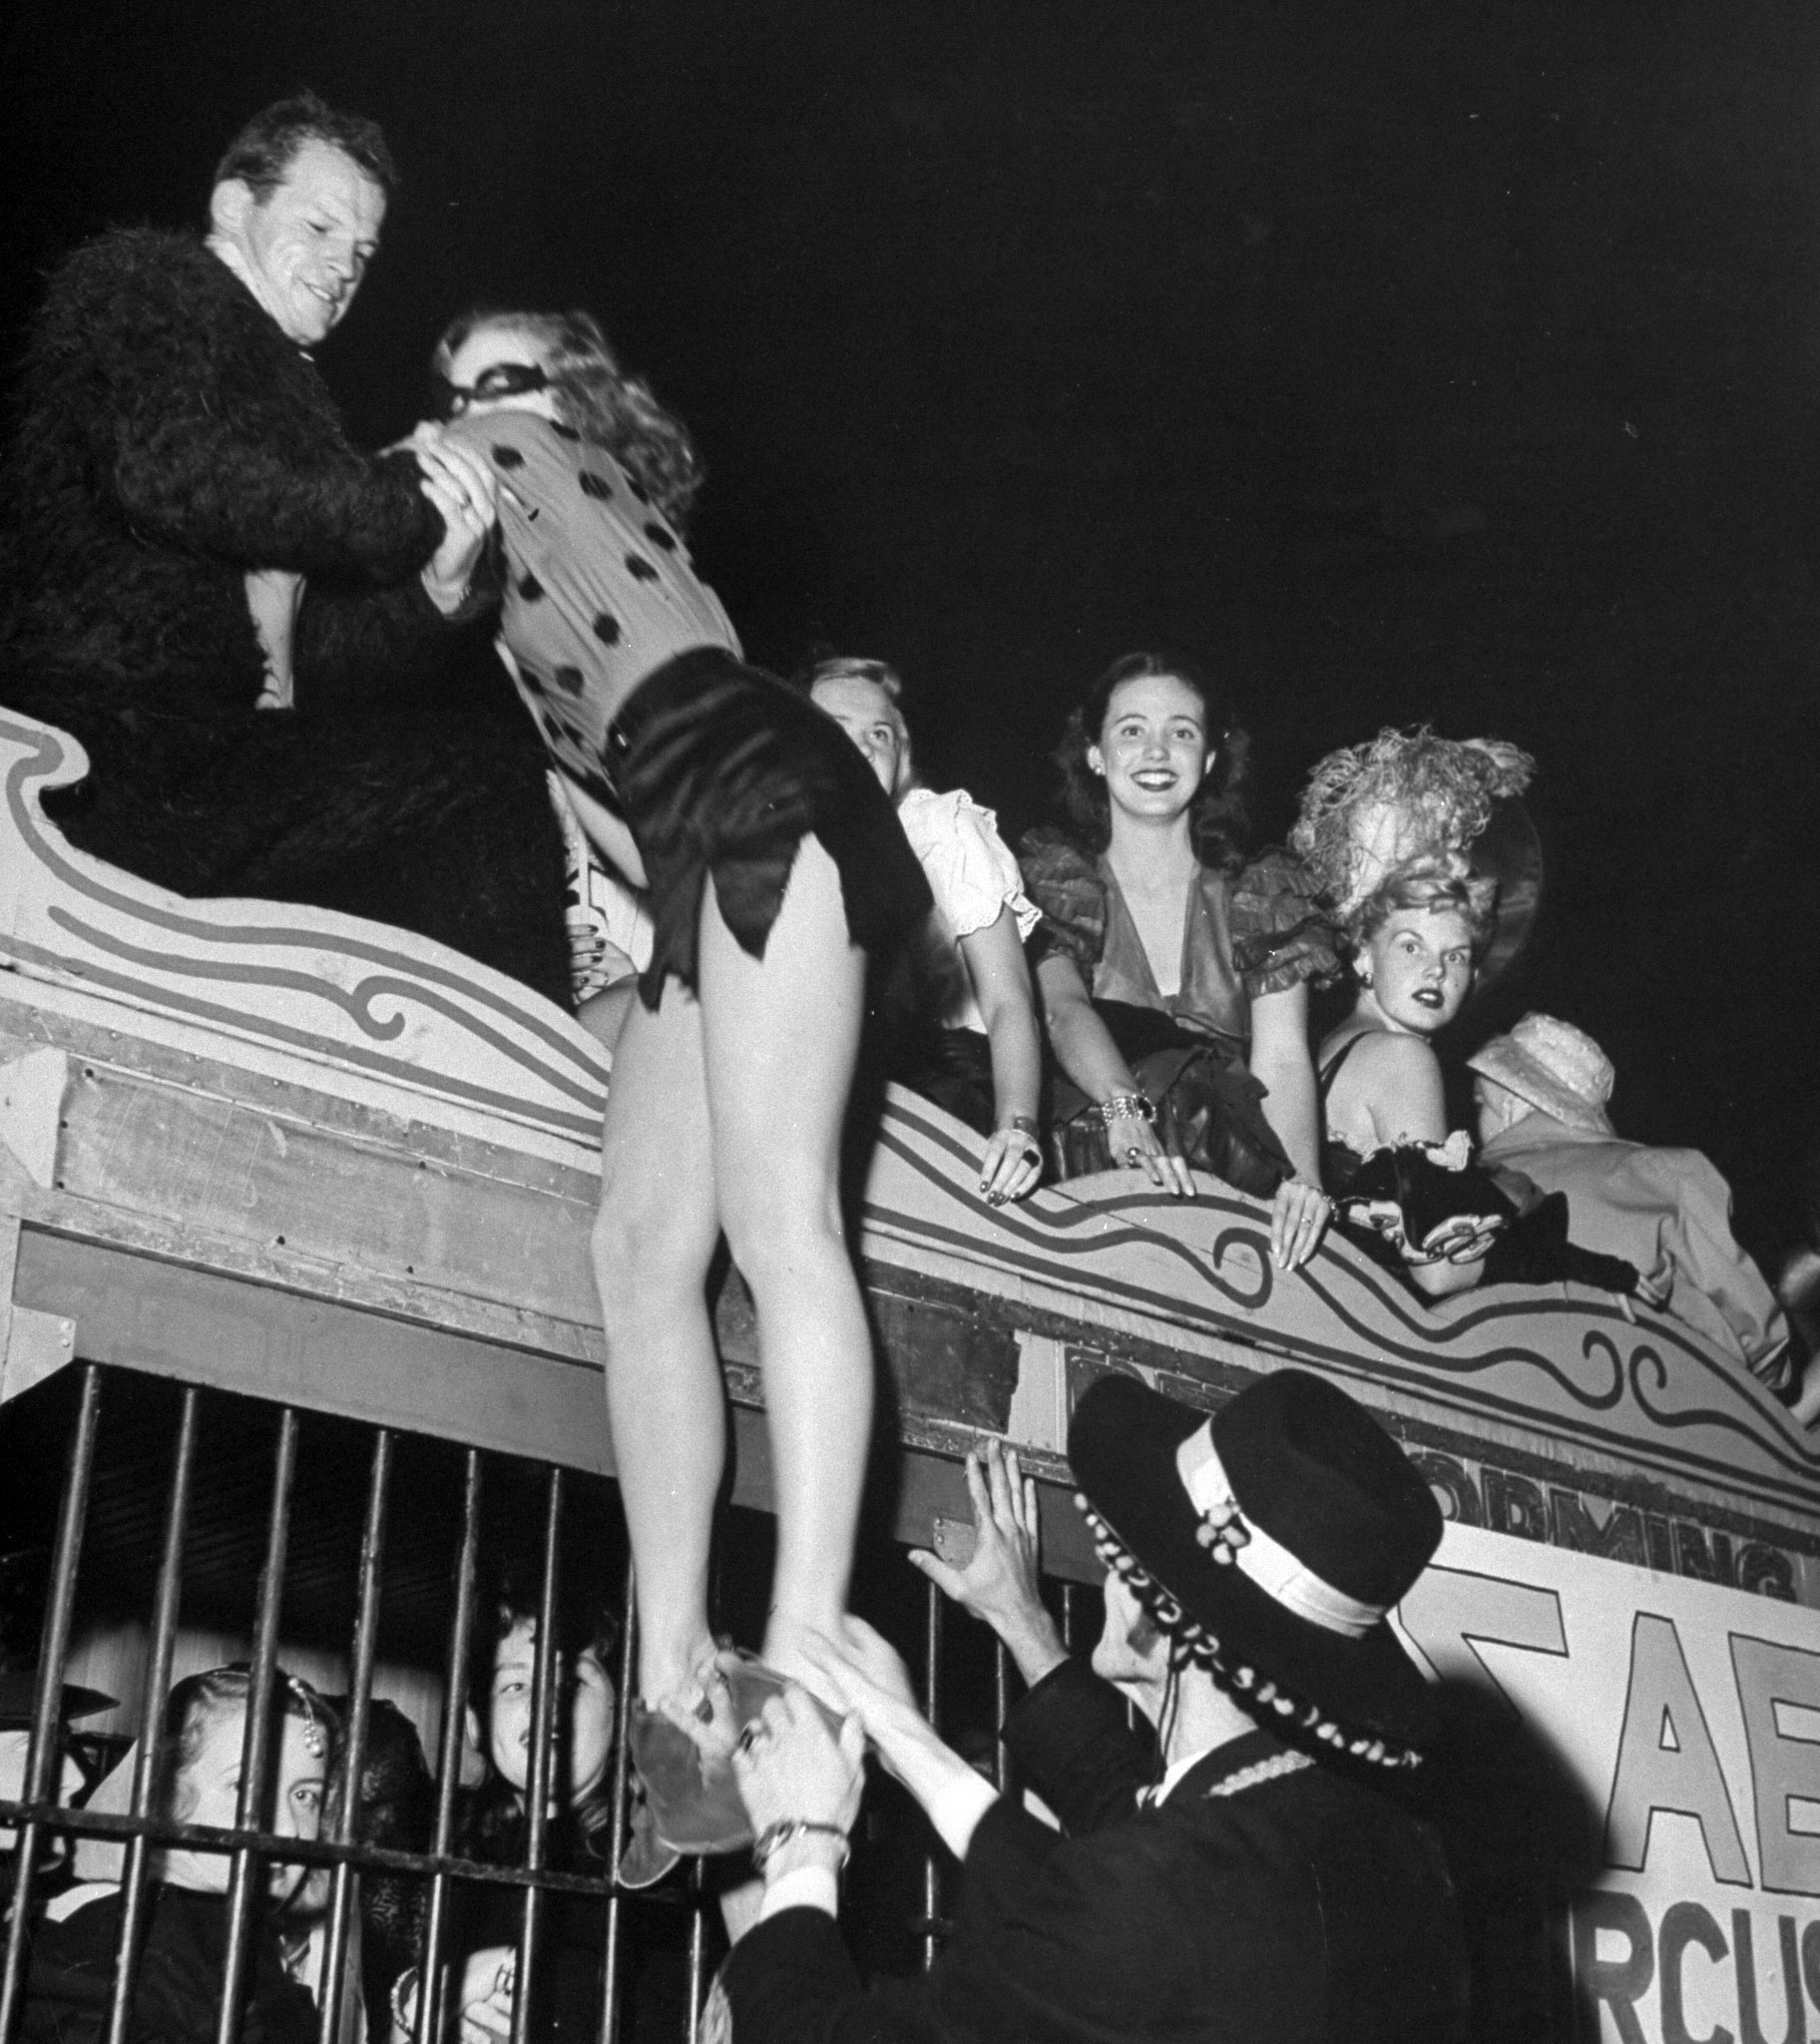 <b>Caption from LIFE.</b> A long-legged coed gets hoisted atop a circus wagon which will take her to the Sigma Alpha Epsilon circus masquerade party at U.C.L.A. The inside of the wagon, which normally is used for lions by a local circus, was already full of other guests. Halfway to the party the wagon broke down and the girls and their hosts continued on foot.